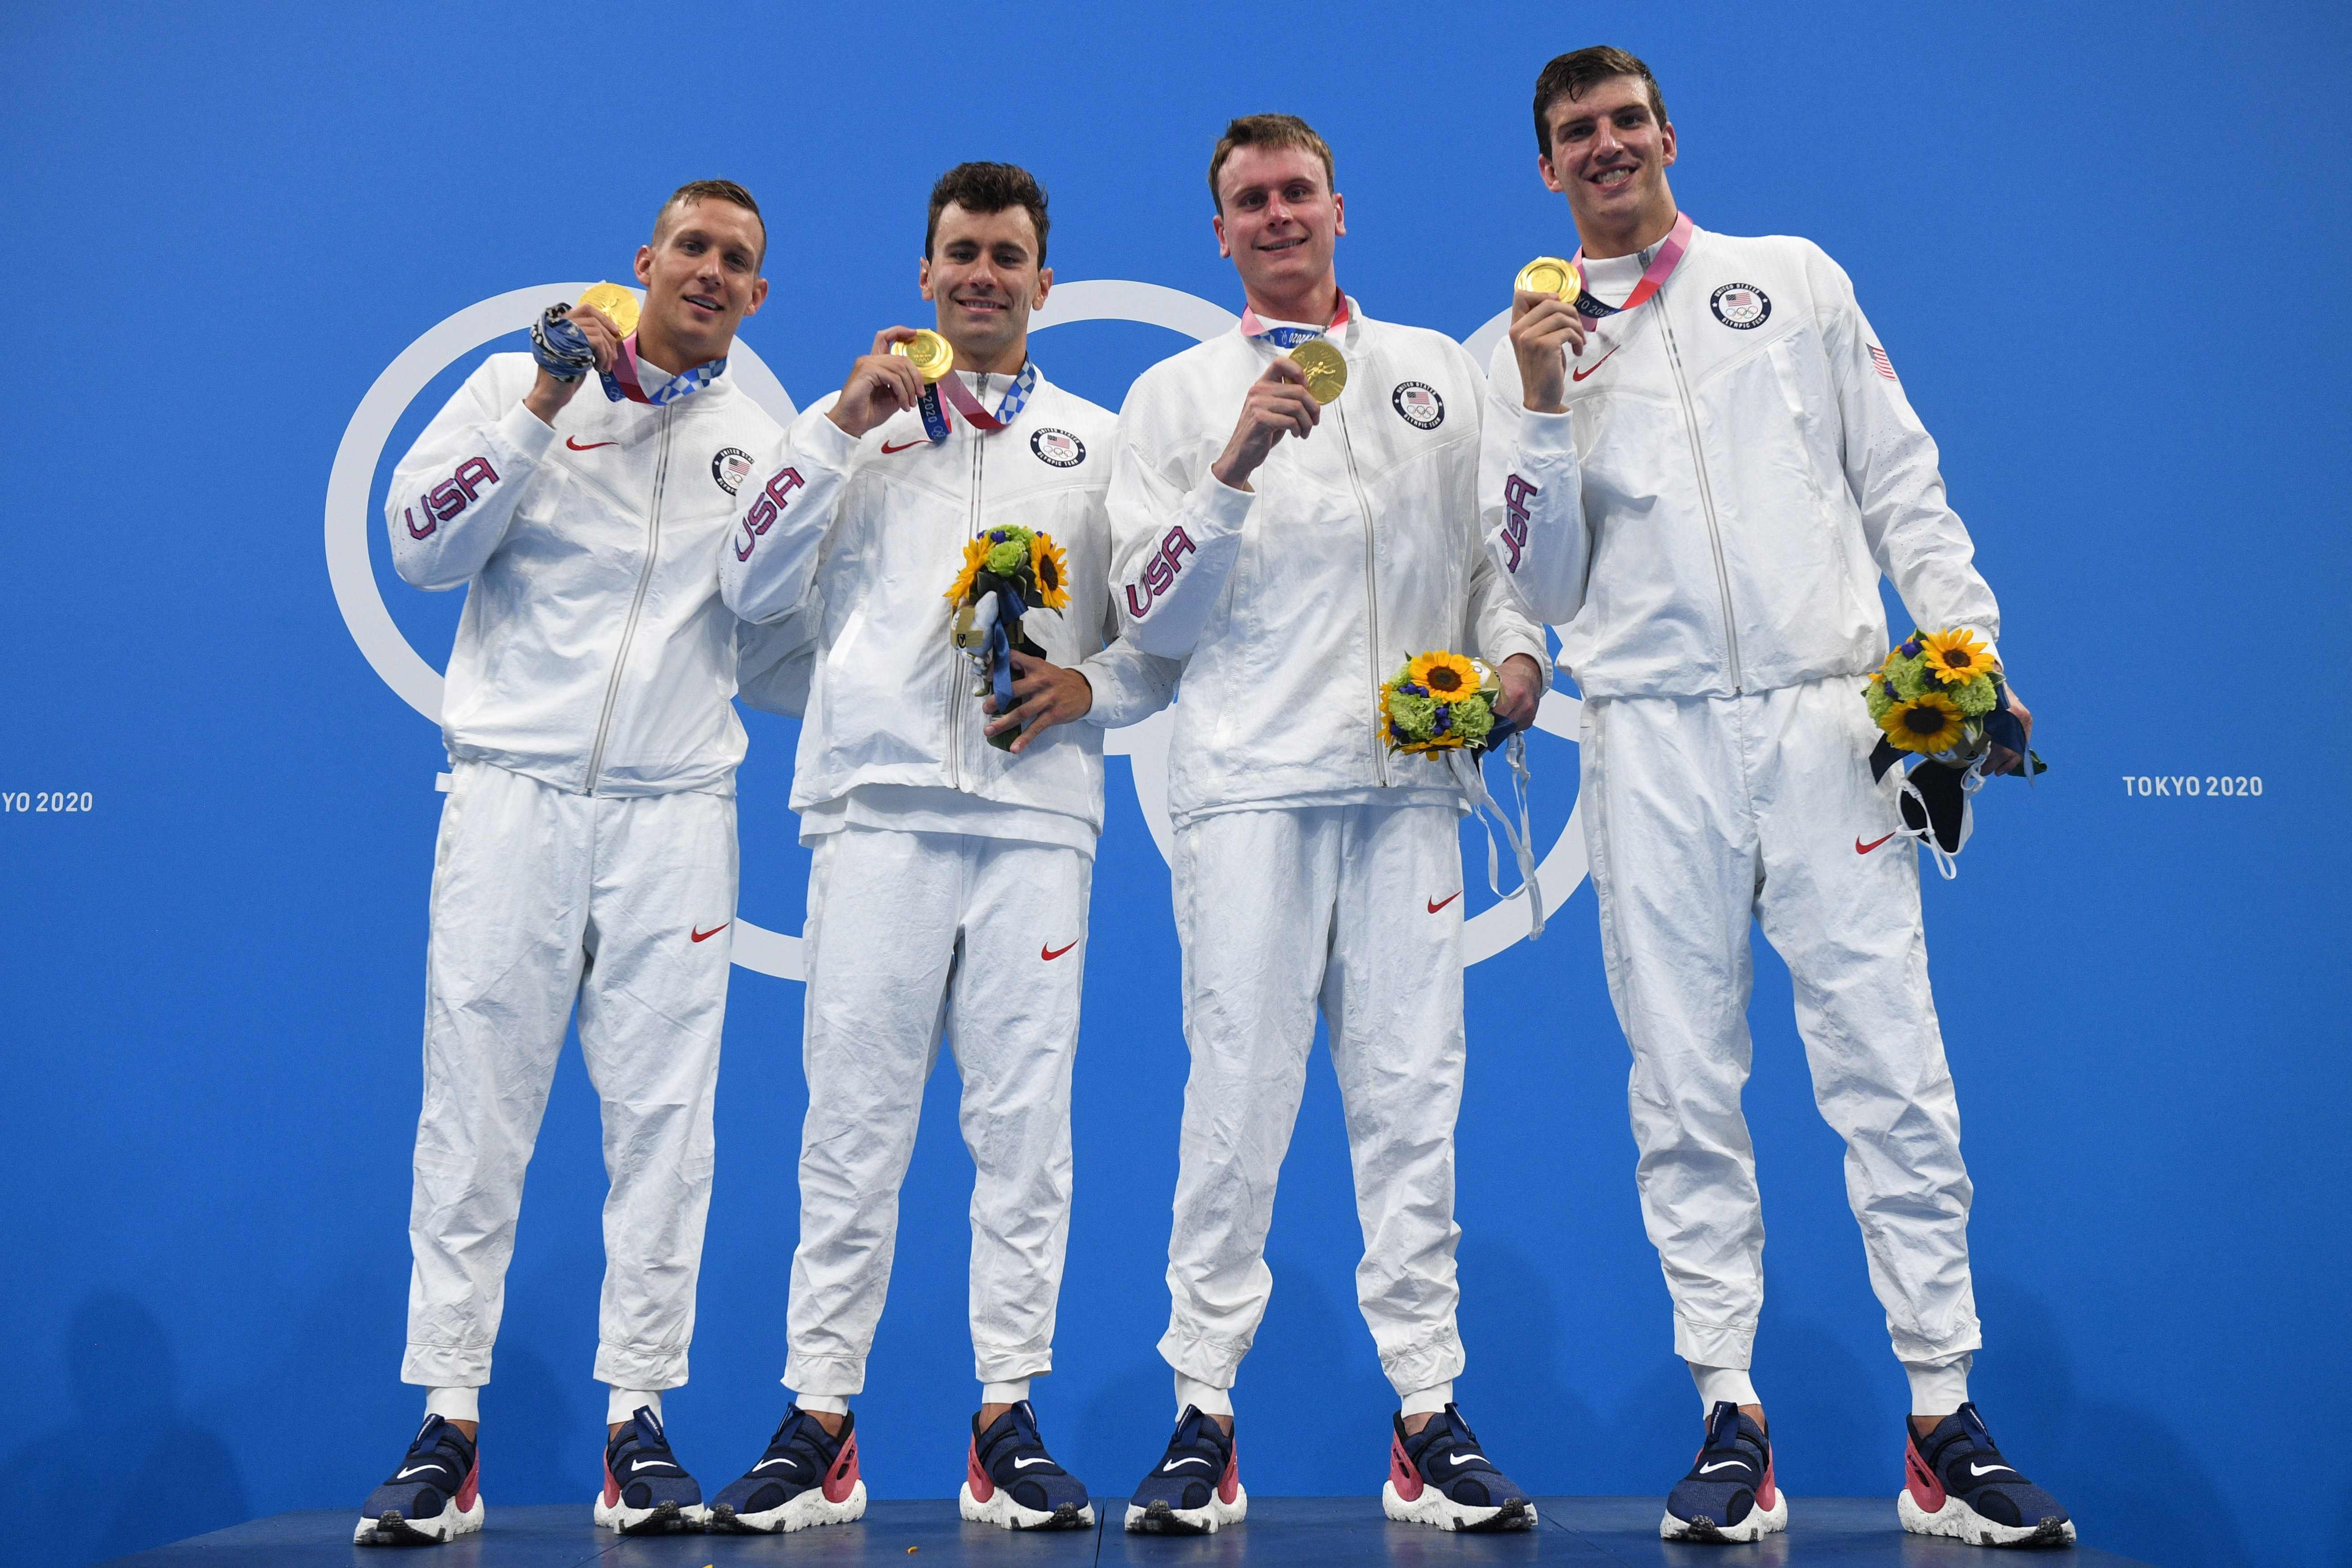 U.S. wins gold in men's 4x100m freestyle relay